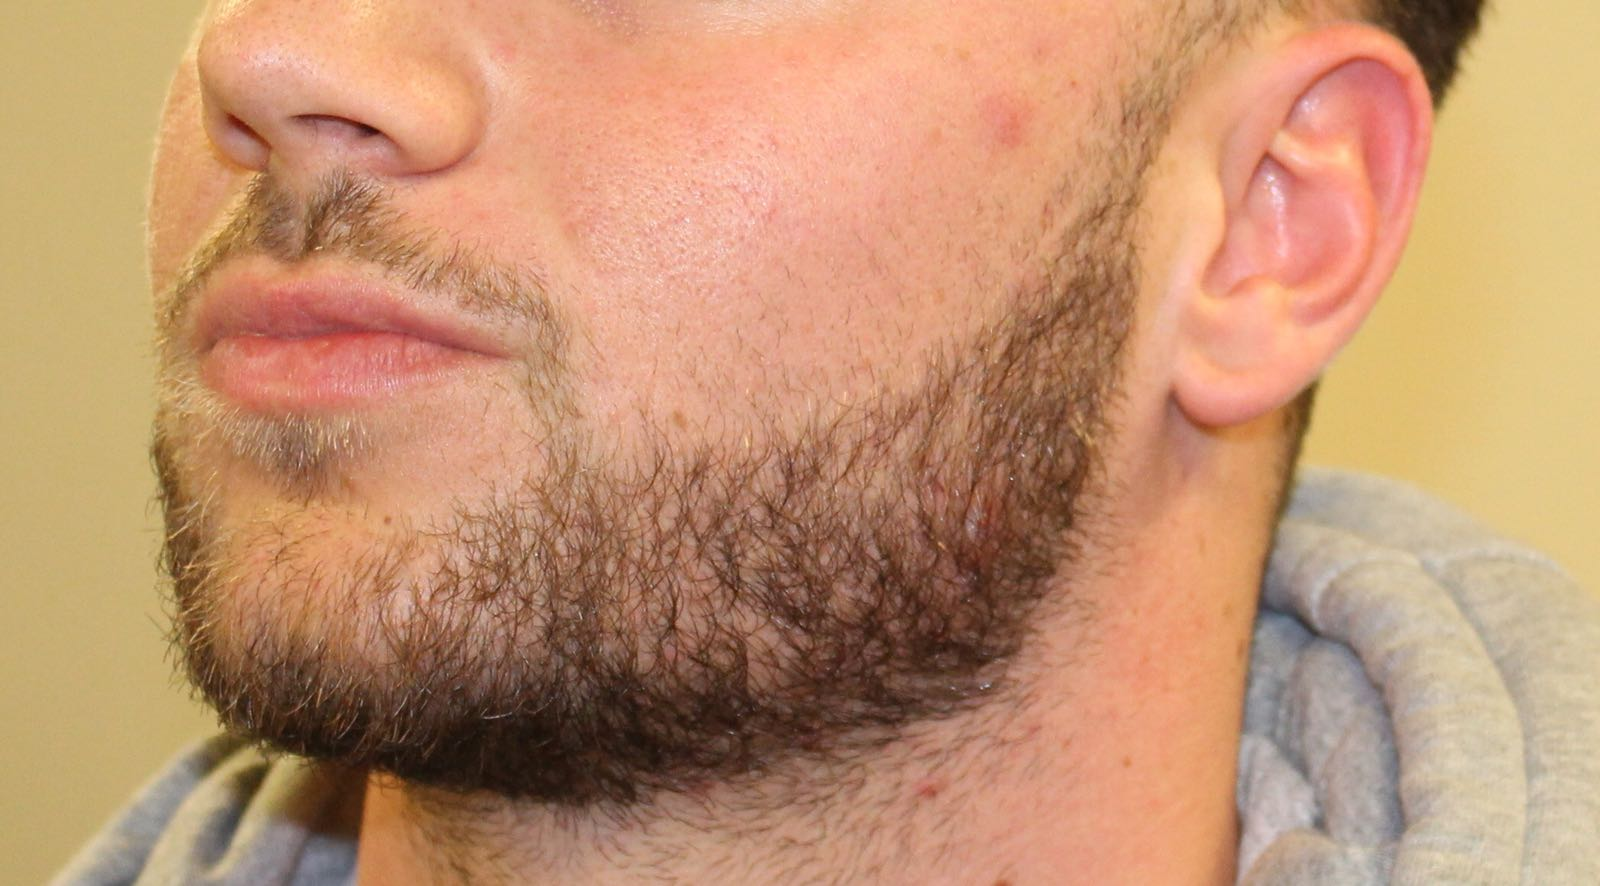 After Treatment: Teeth Grinding & Jawline Slimming